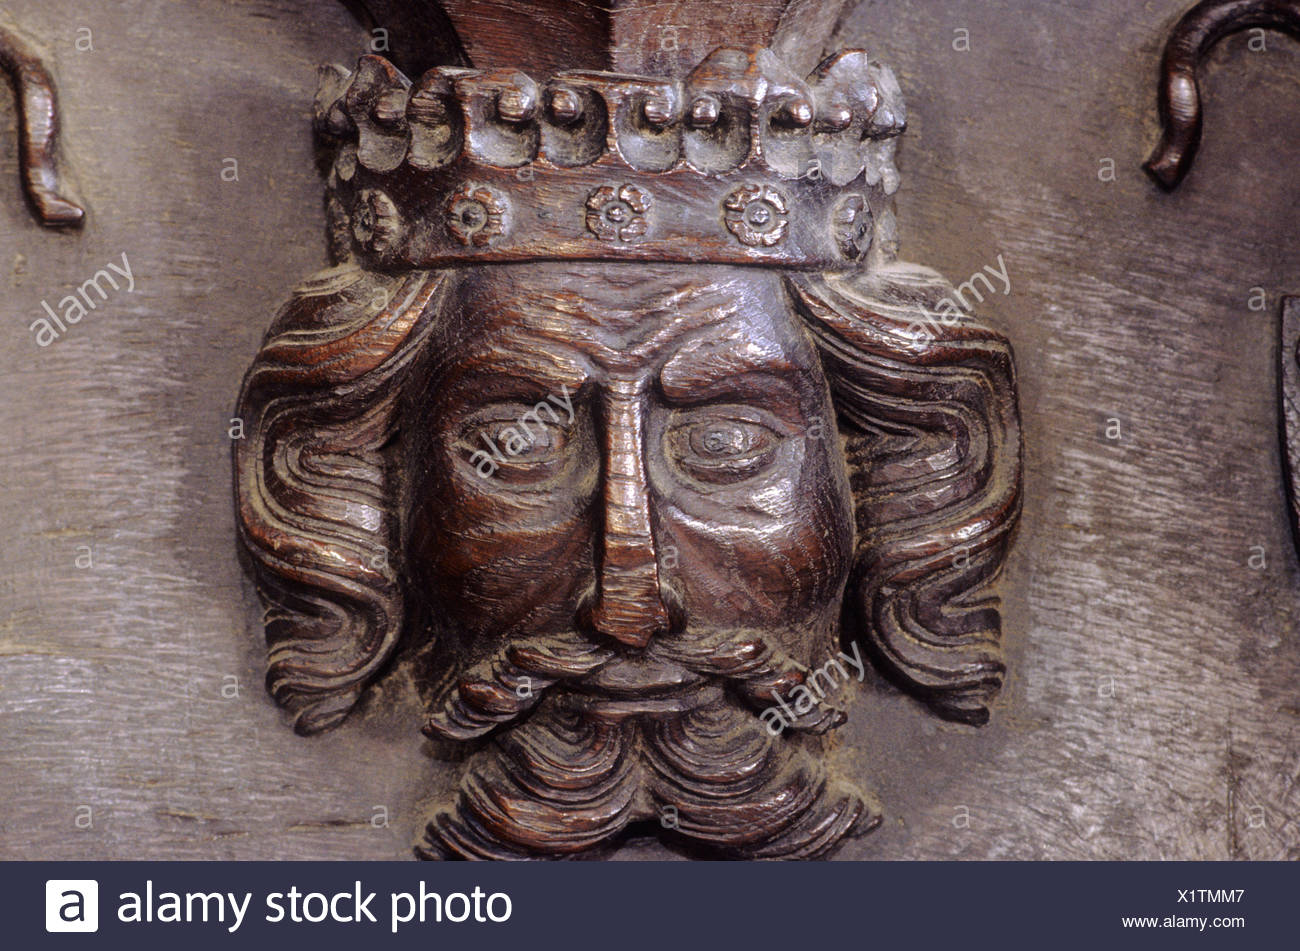 Misericord Edward the Black Prince Kings Lynn St Margaret's church 14th century English medieval wood carving head crown seat - Stock Image